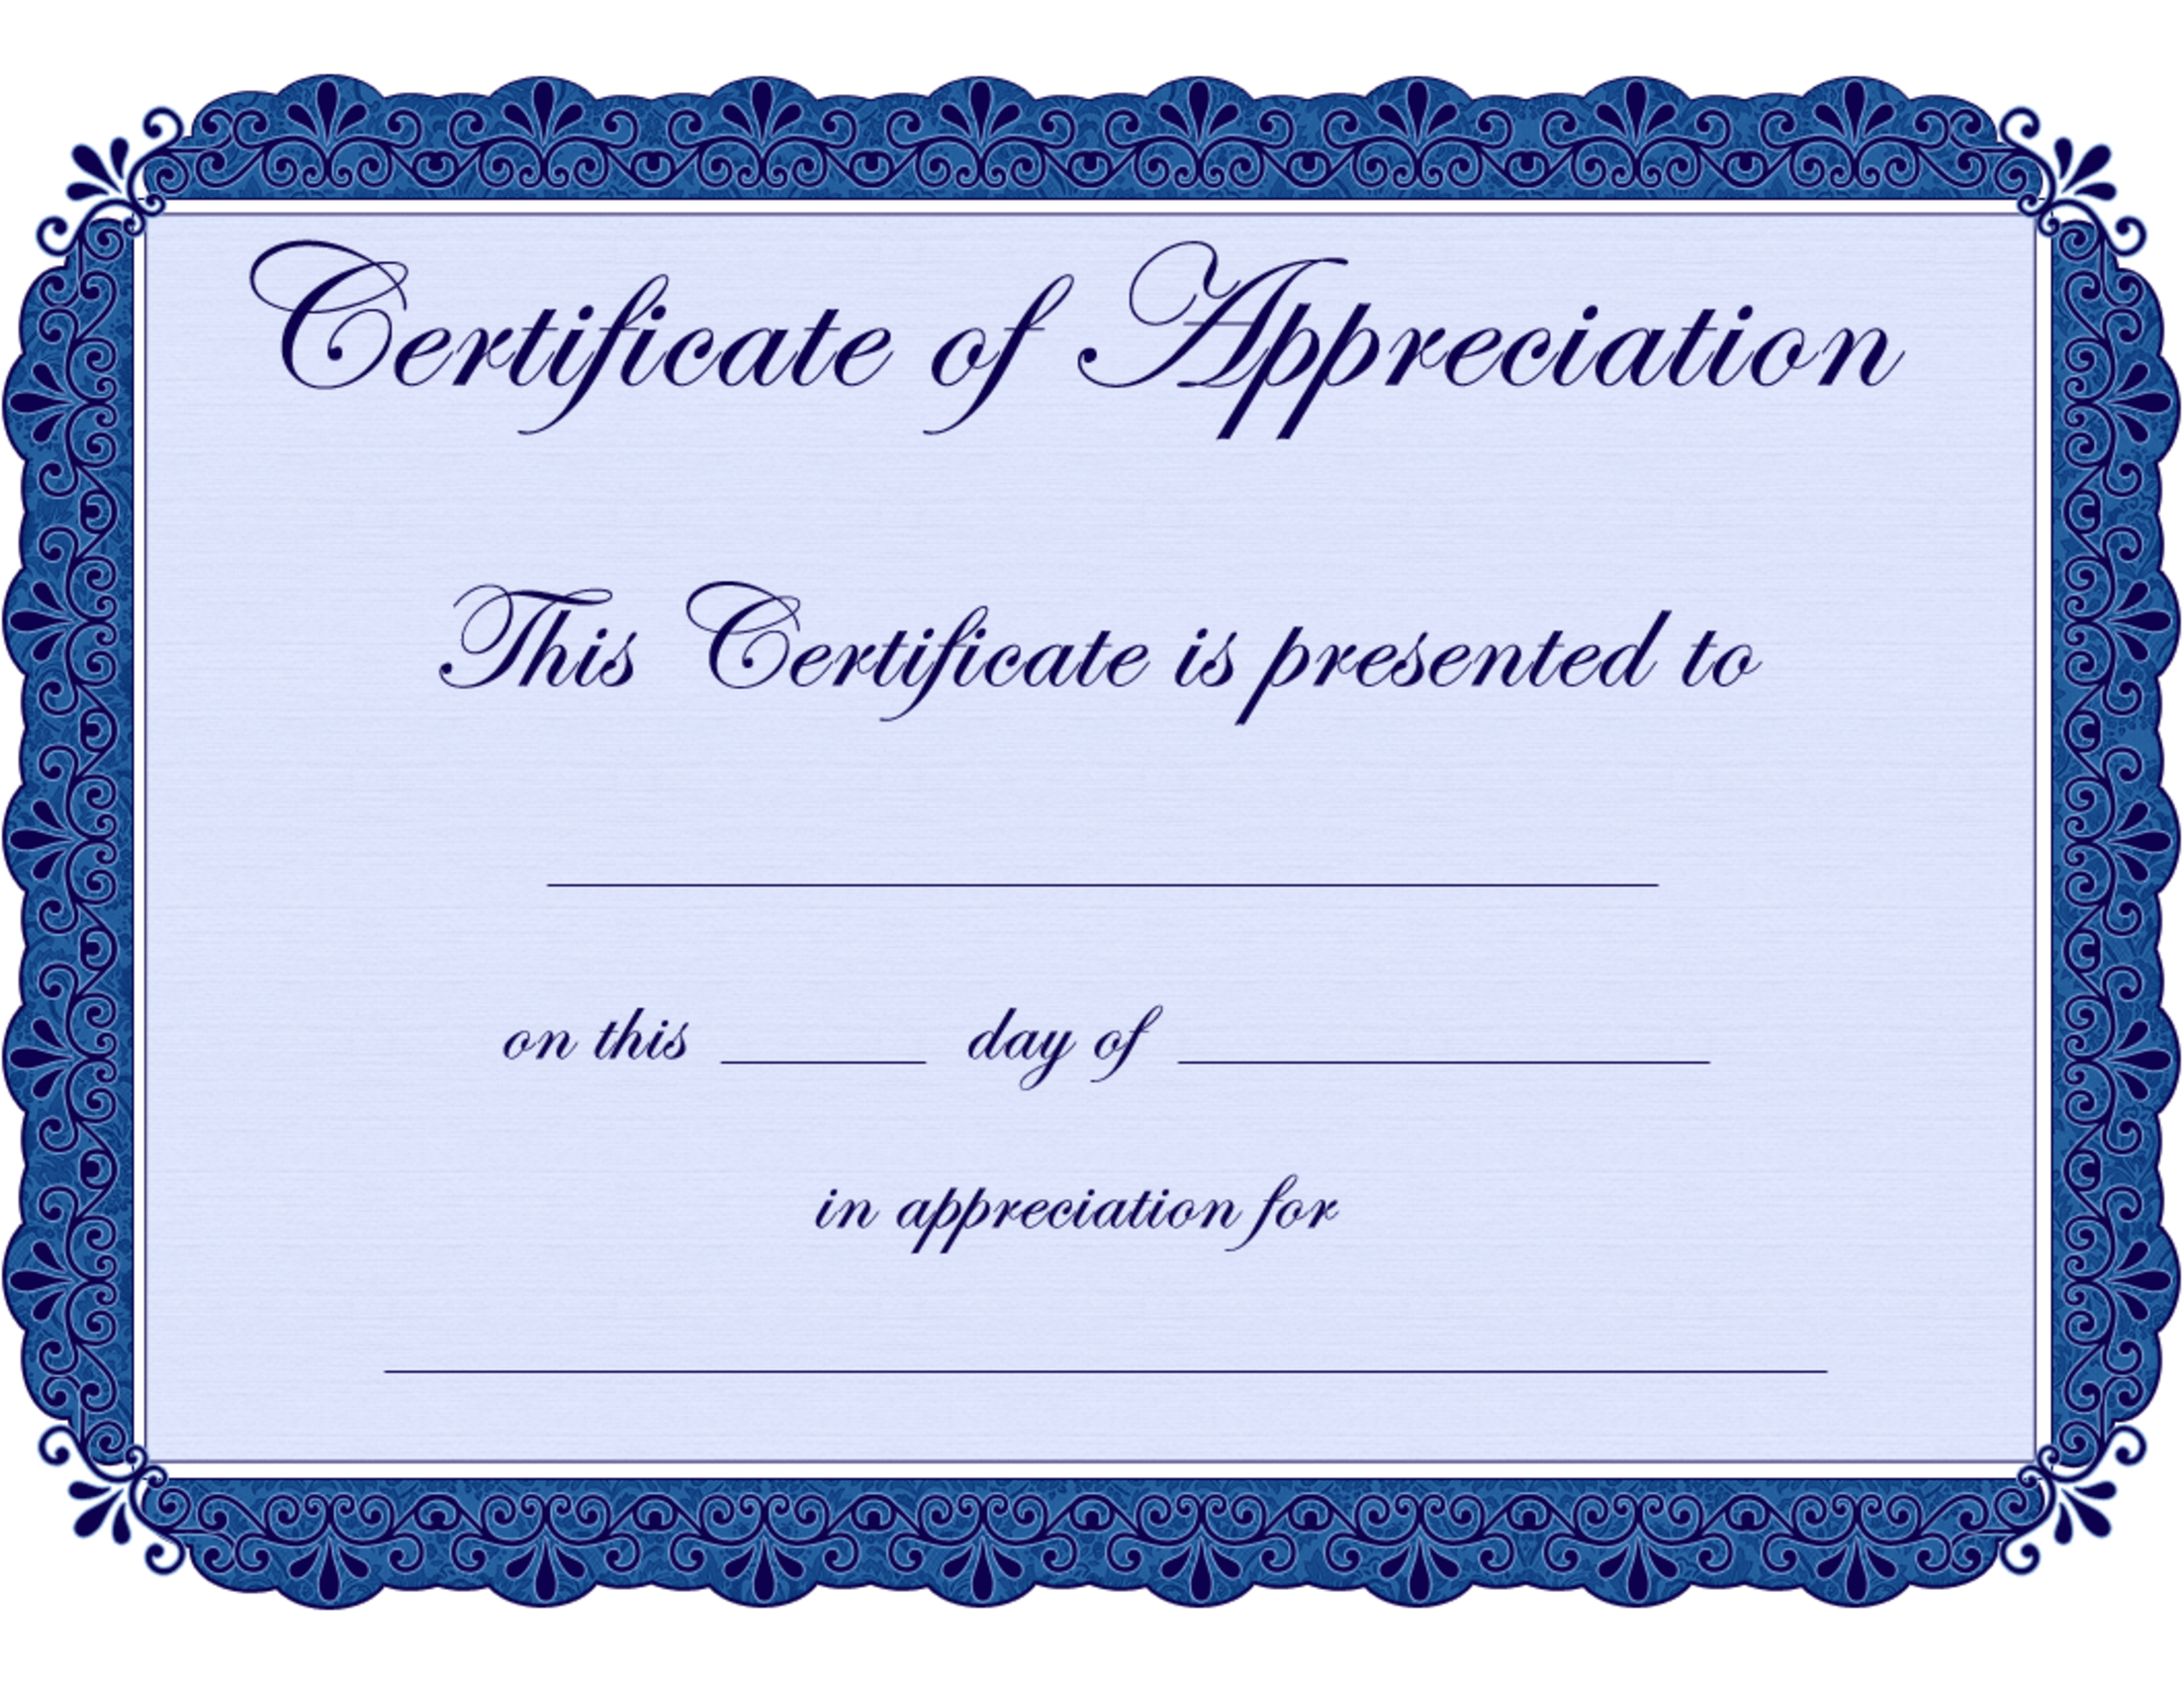 Free Printable Certificates Certificate Of Appreciation pertaining to Free Completion Certificate Templates For Word